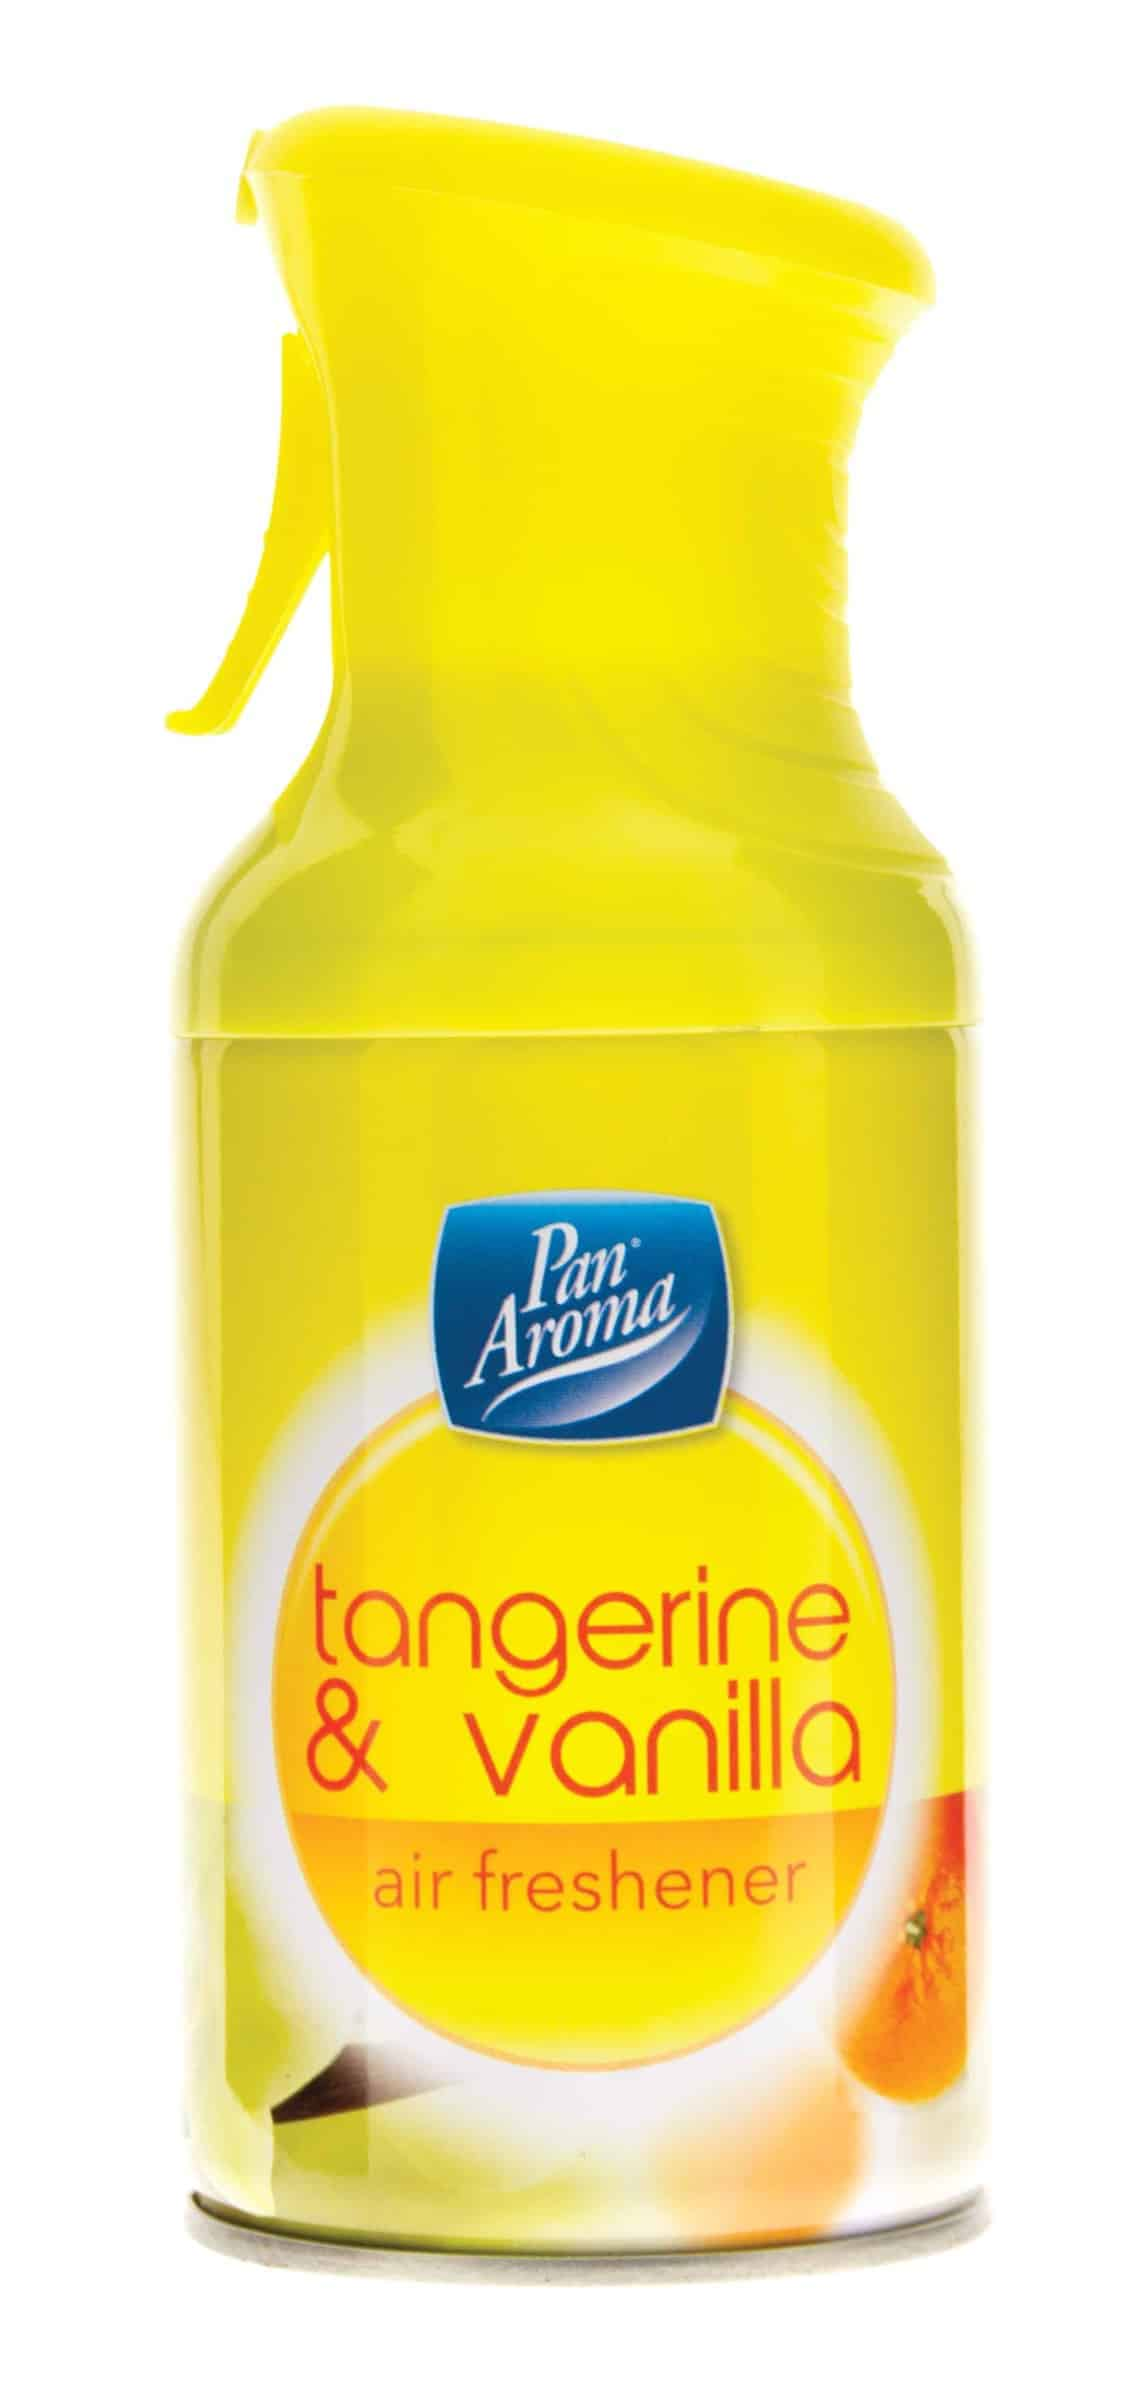 Pan Aroma Tangerine And Vanilla Trigger Spray 250Ml